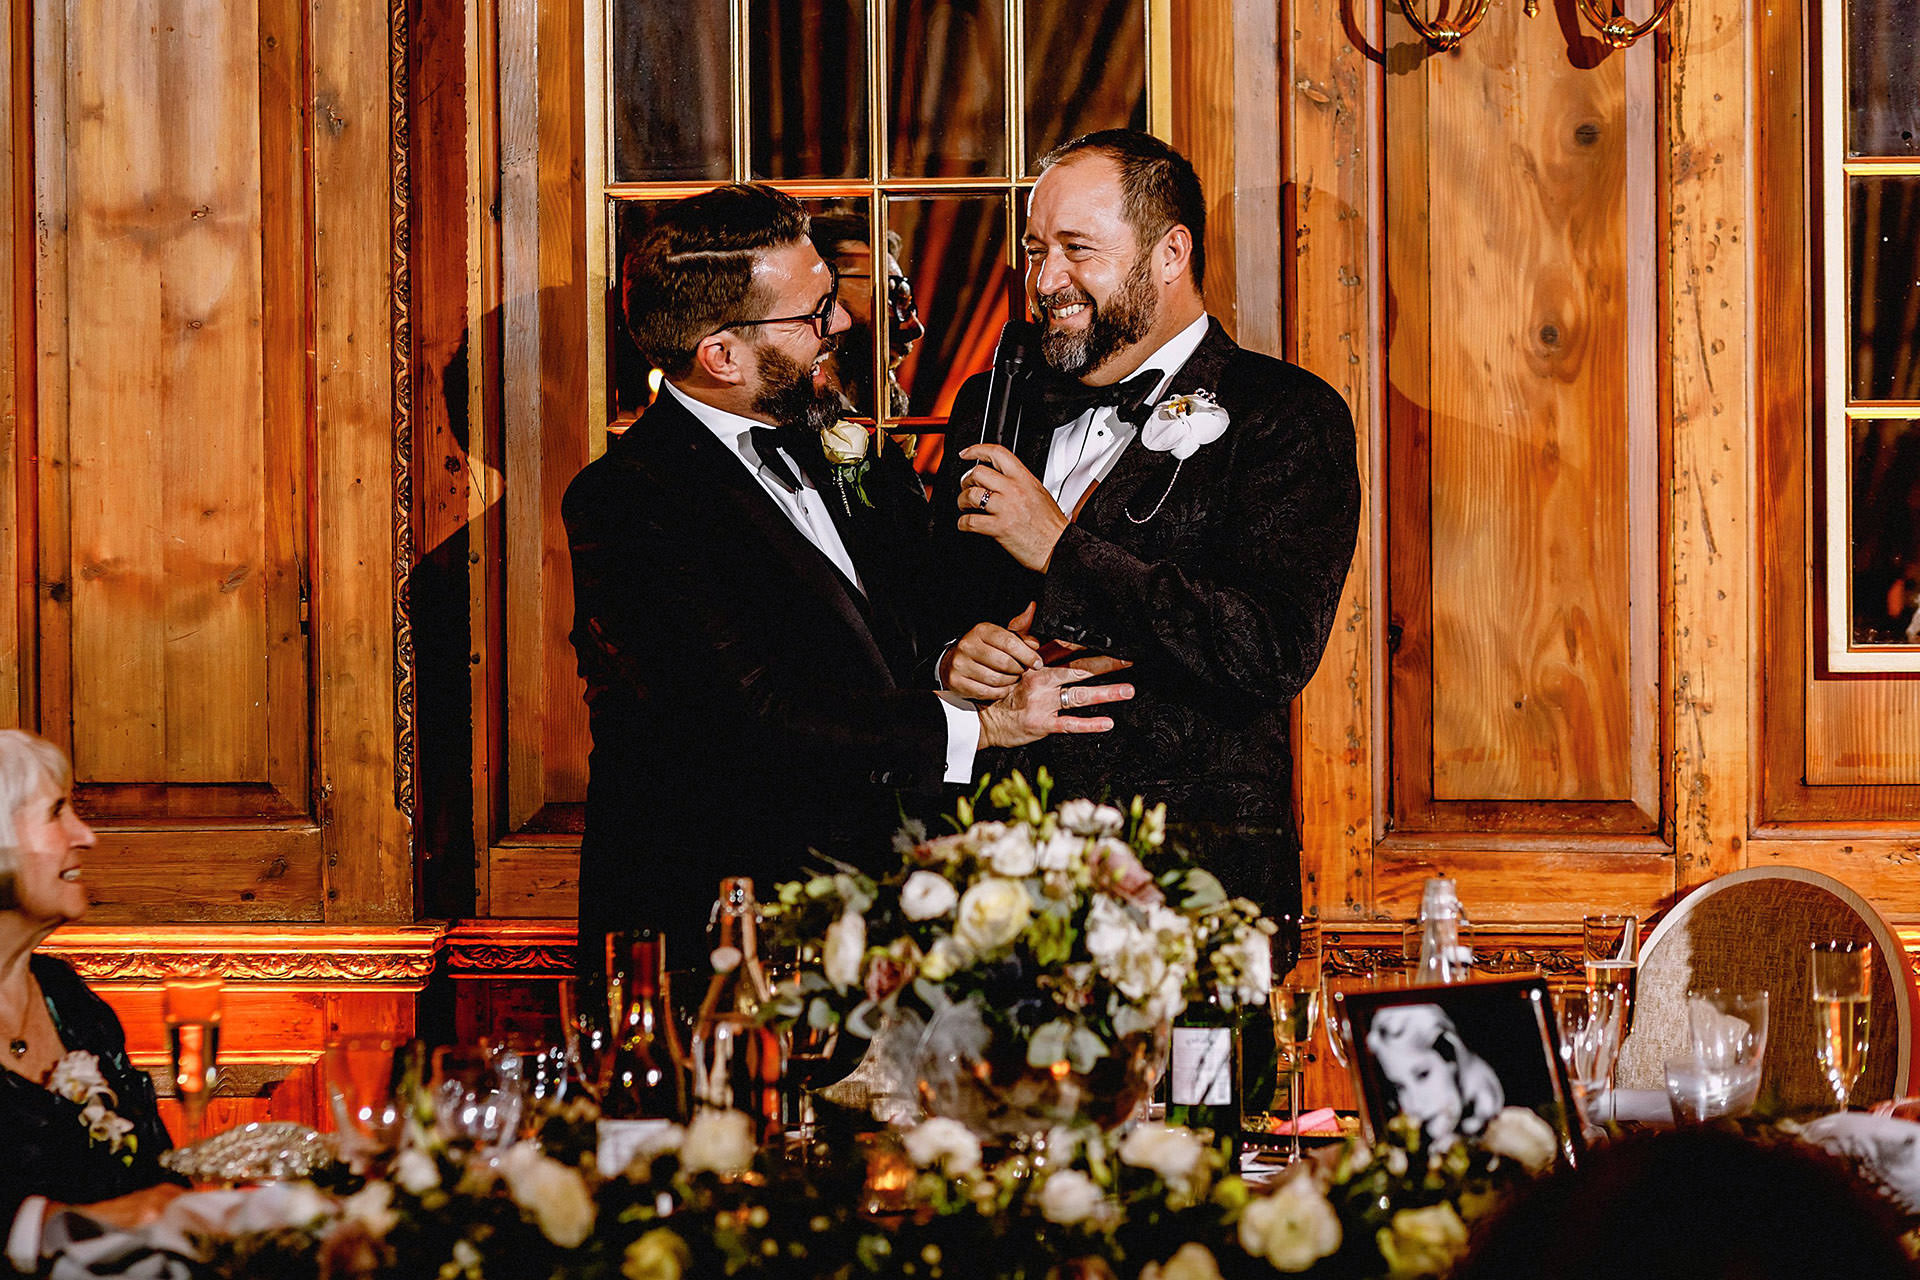 double speech from both grooms